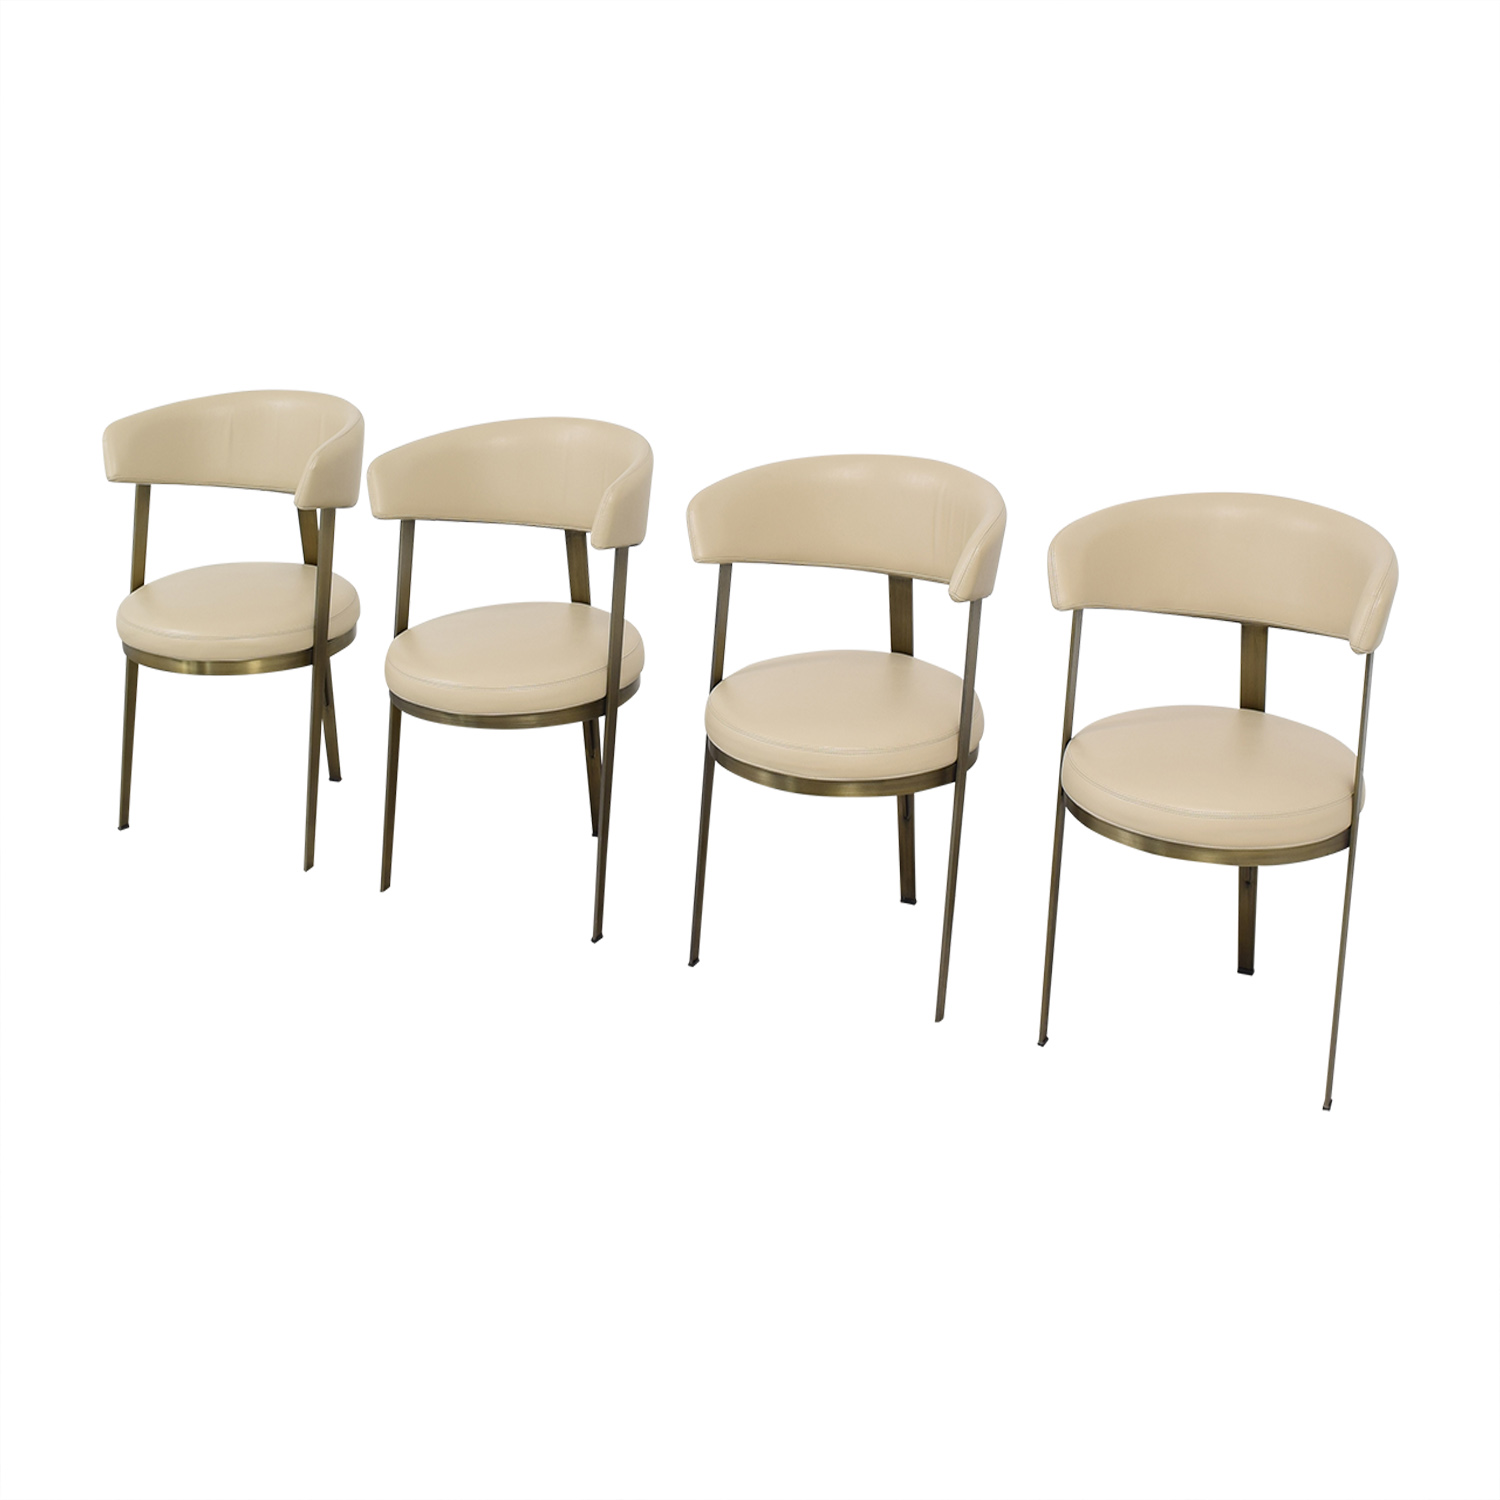 Interlude Home Interlude Home Dining Chairs second hand